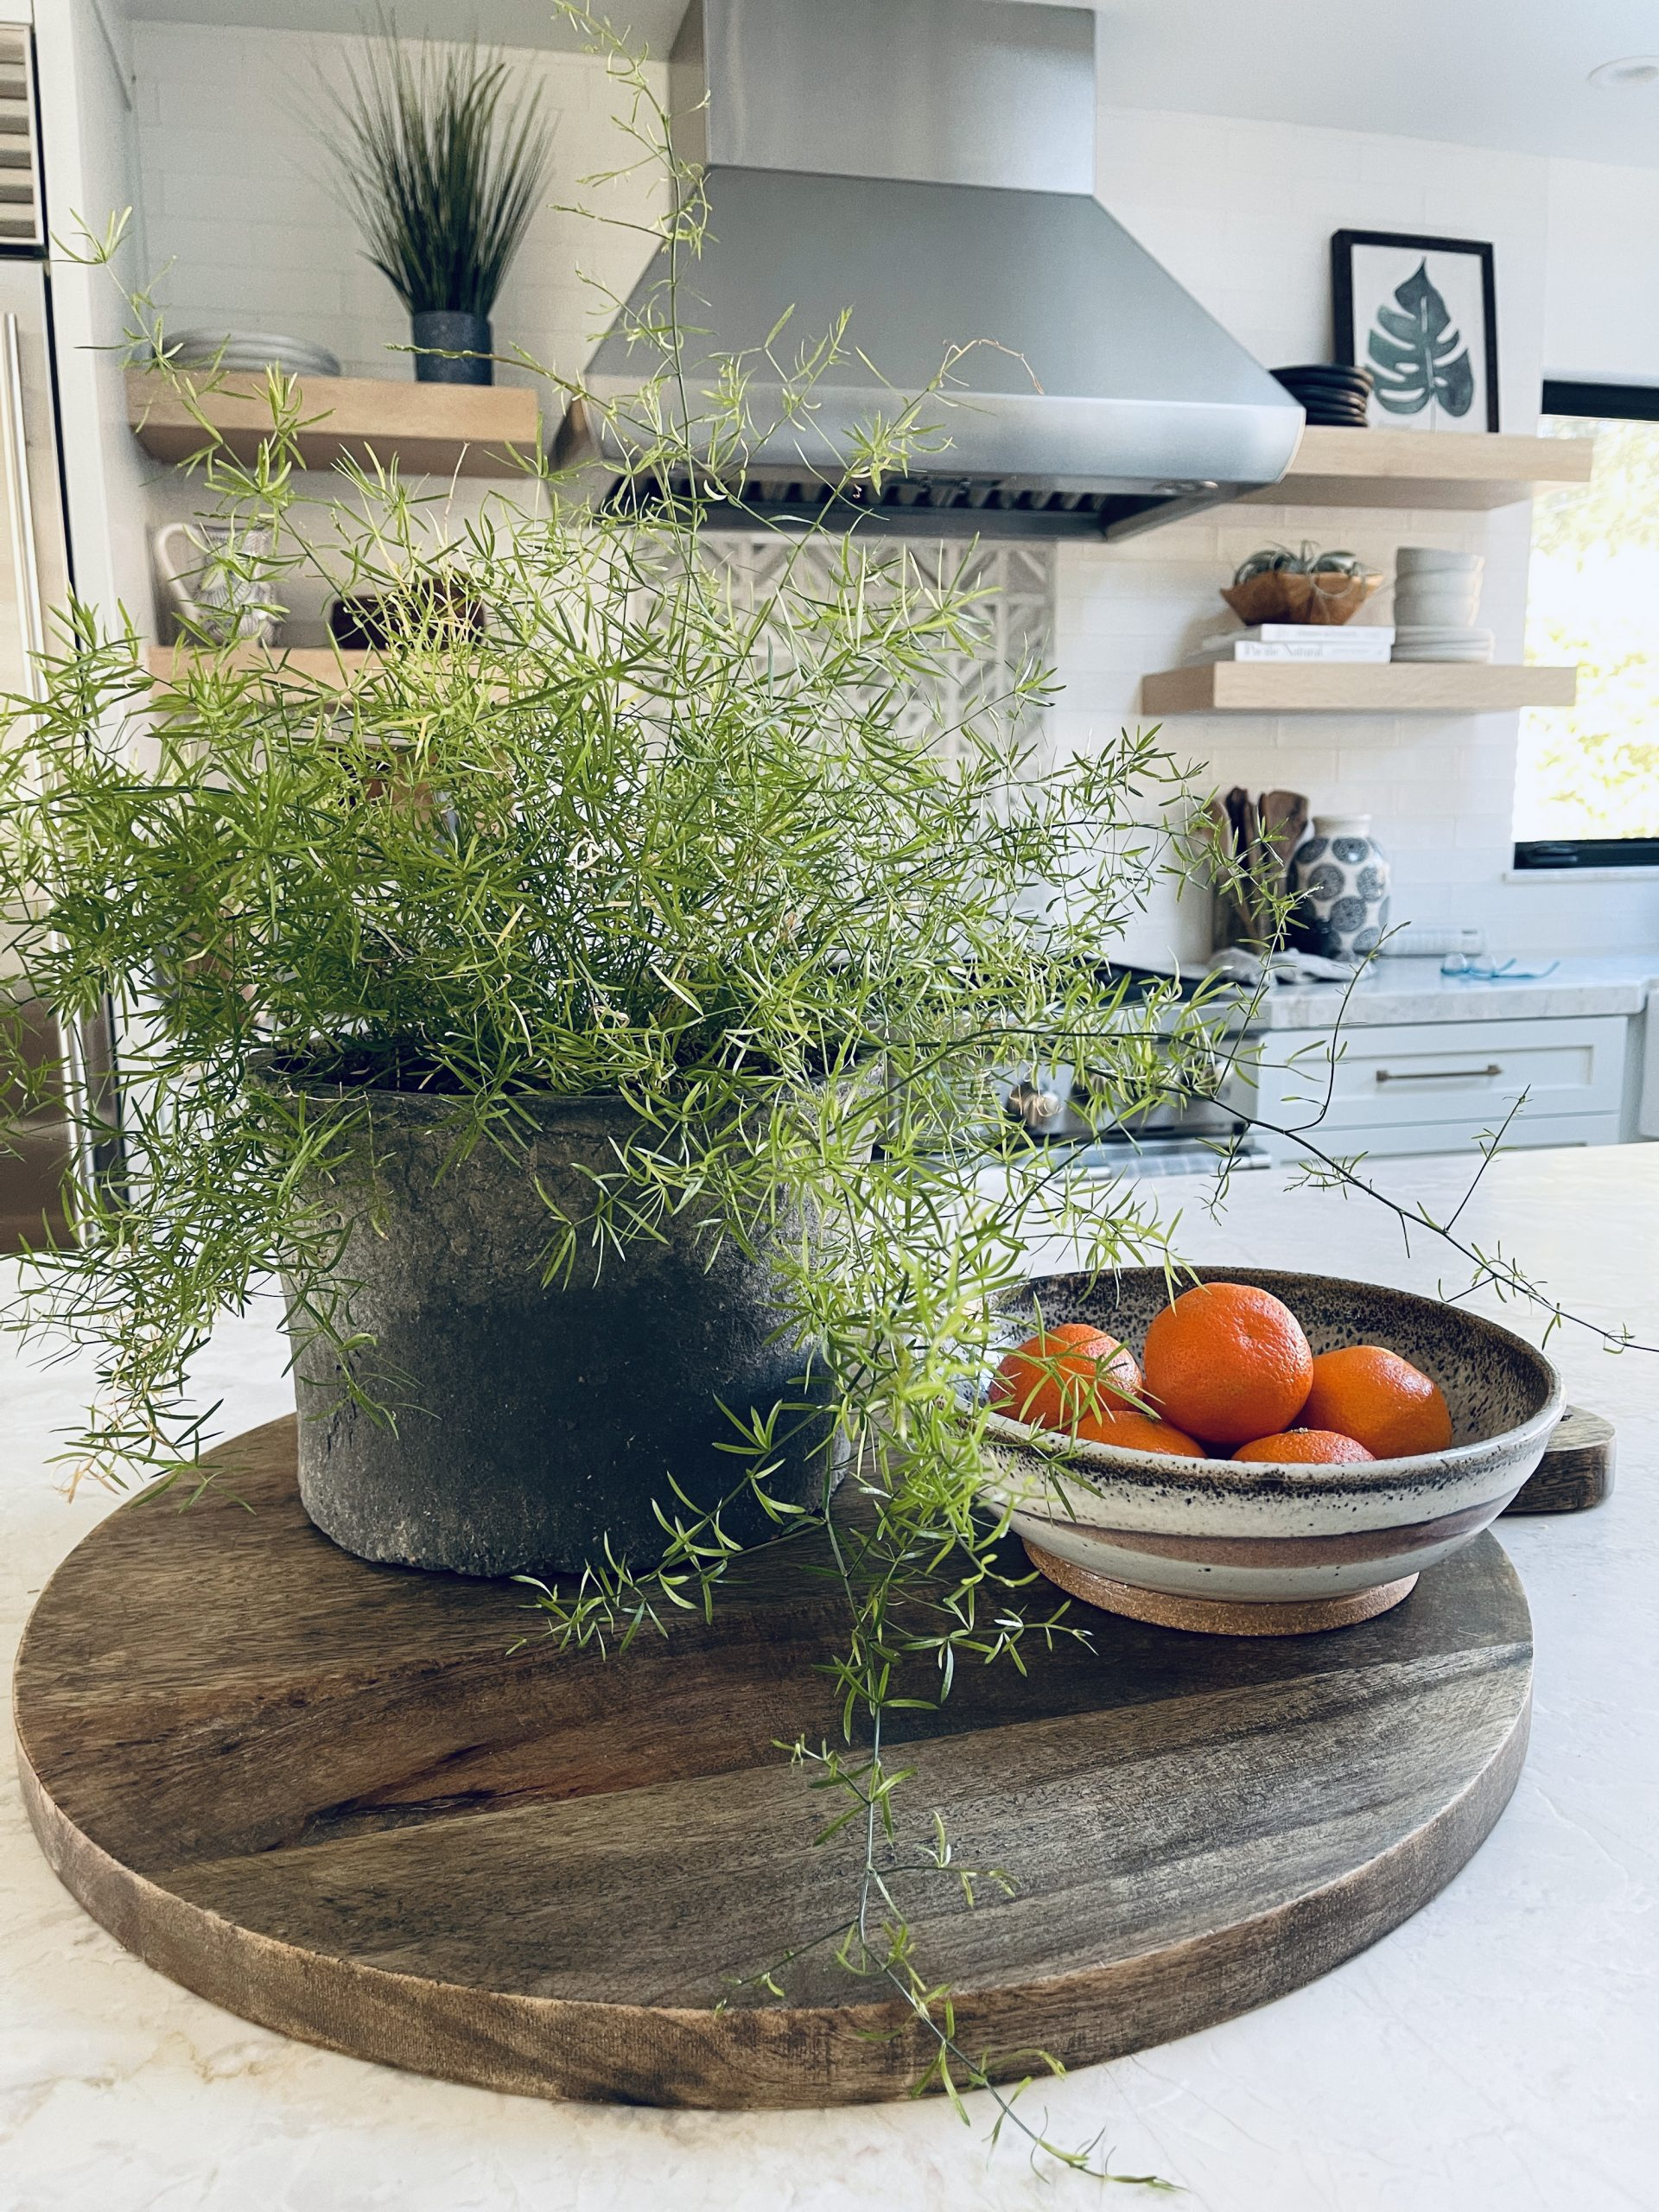 Fun Kitchen Styling Tips!